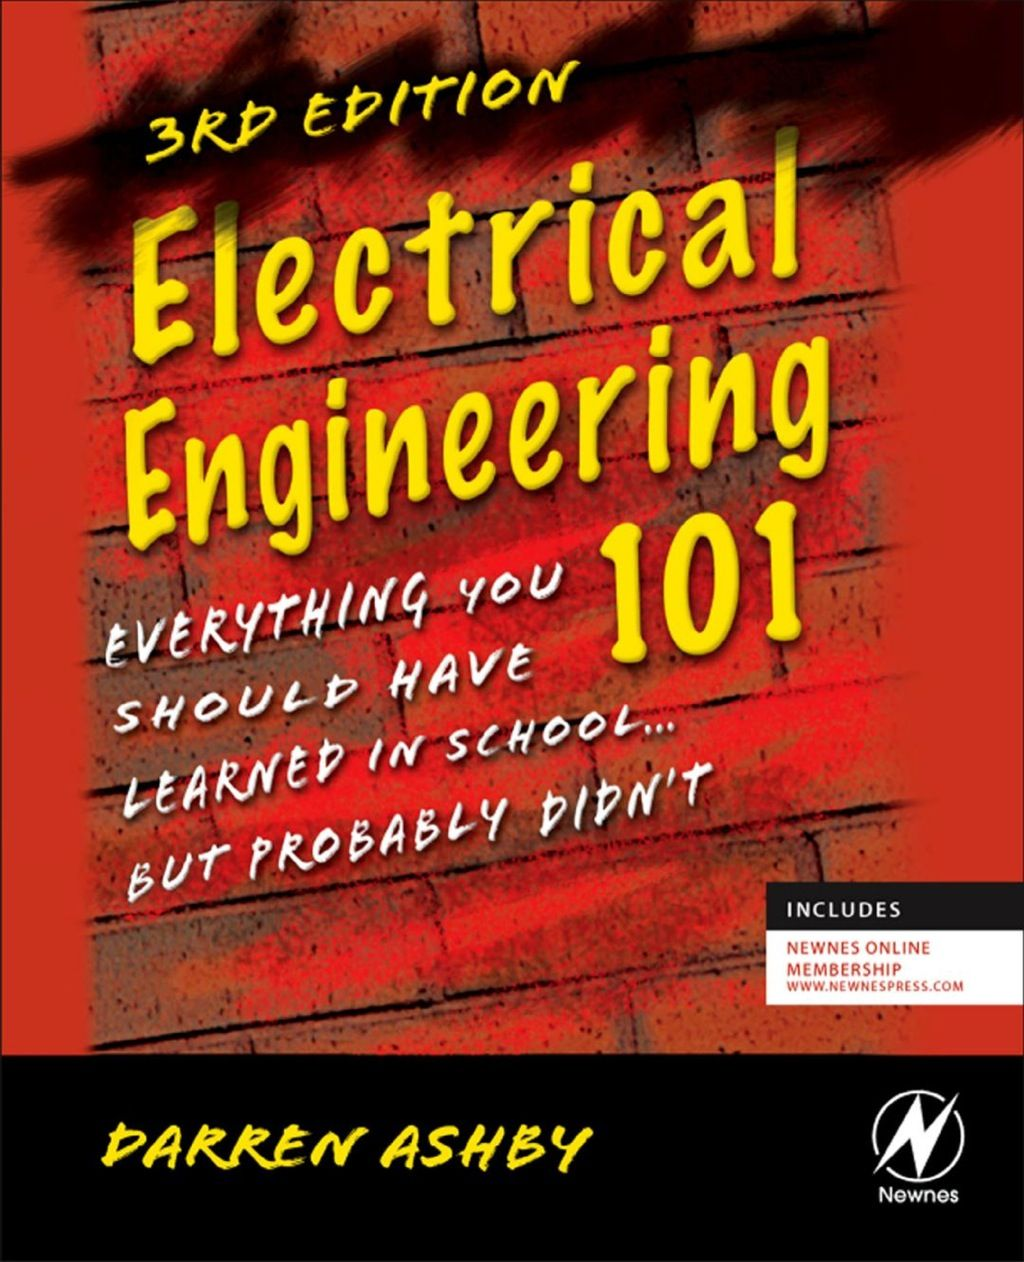 Electrical Engineering 101 Everything You Should Have Learned In